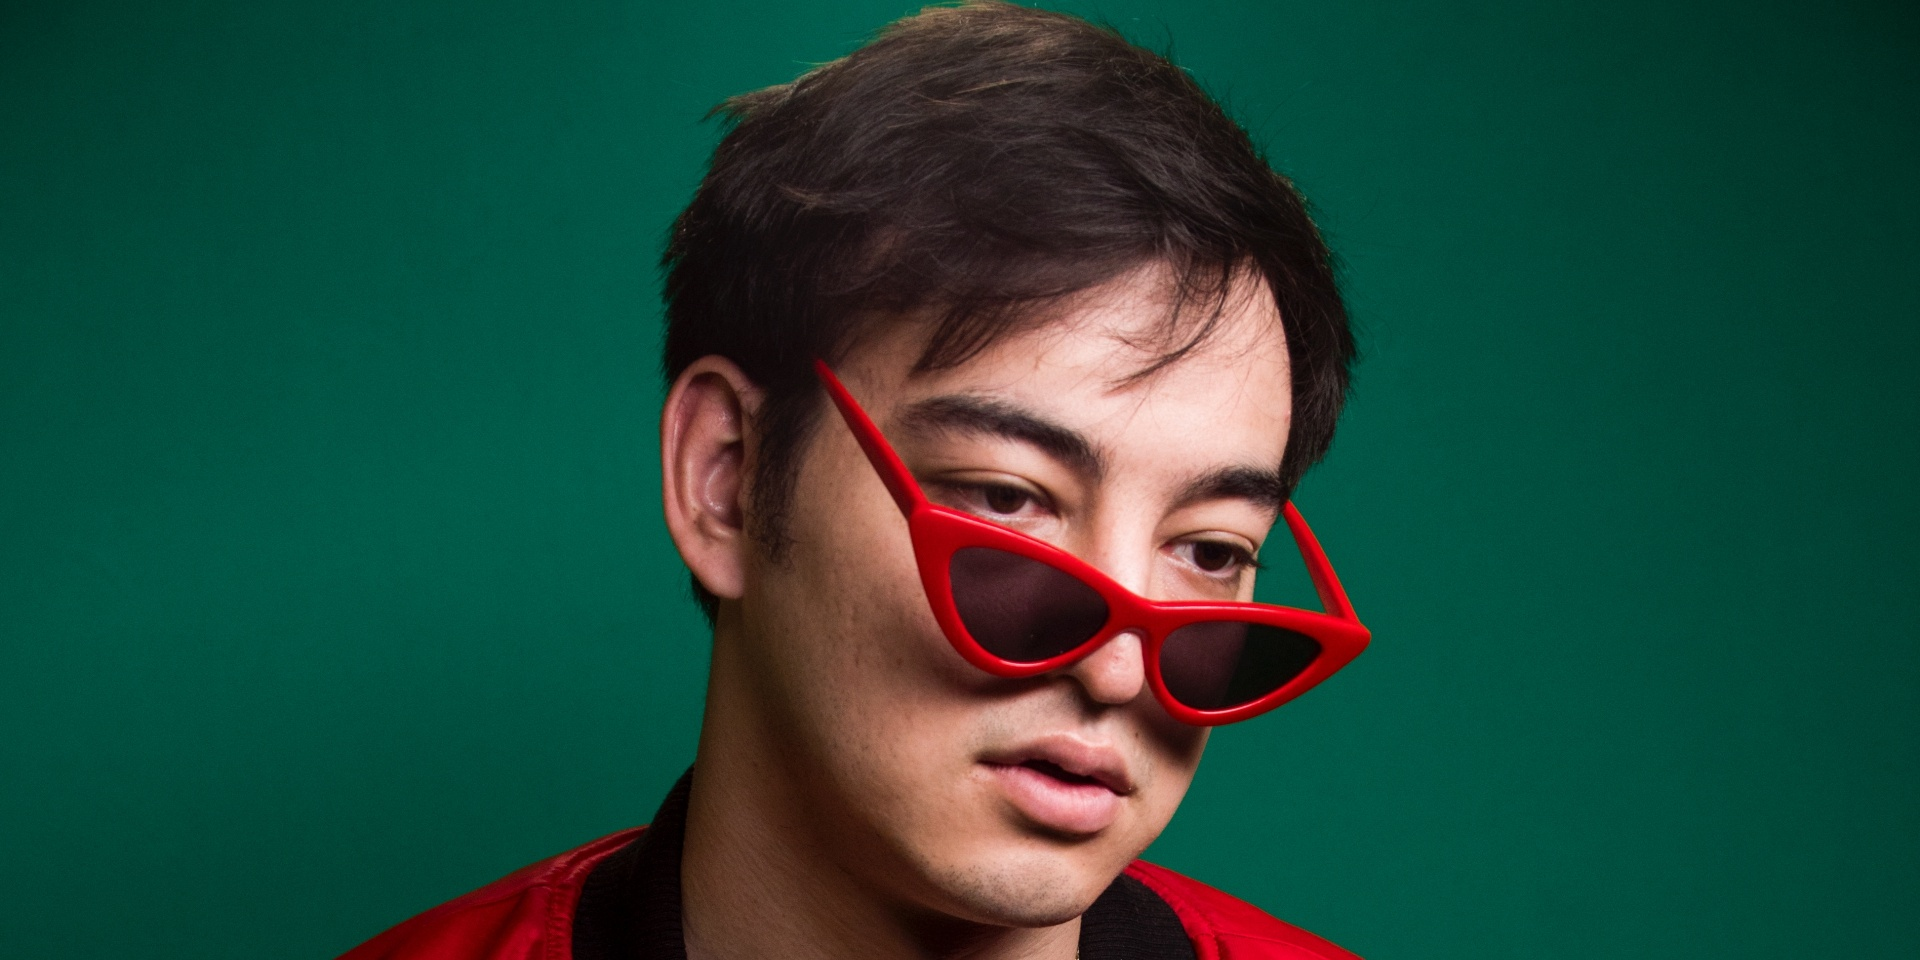 """I got a box cutter with your name on it"": An interview with Joji"